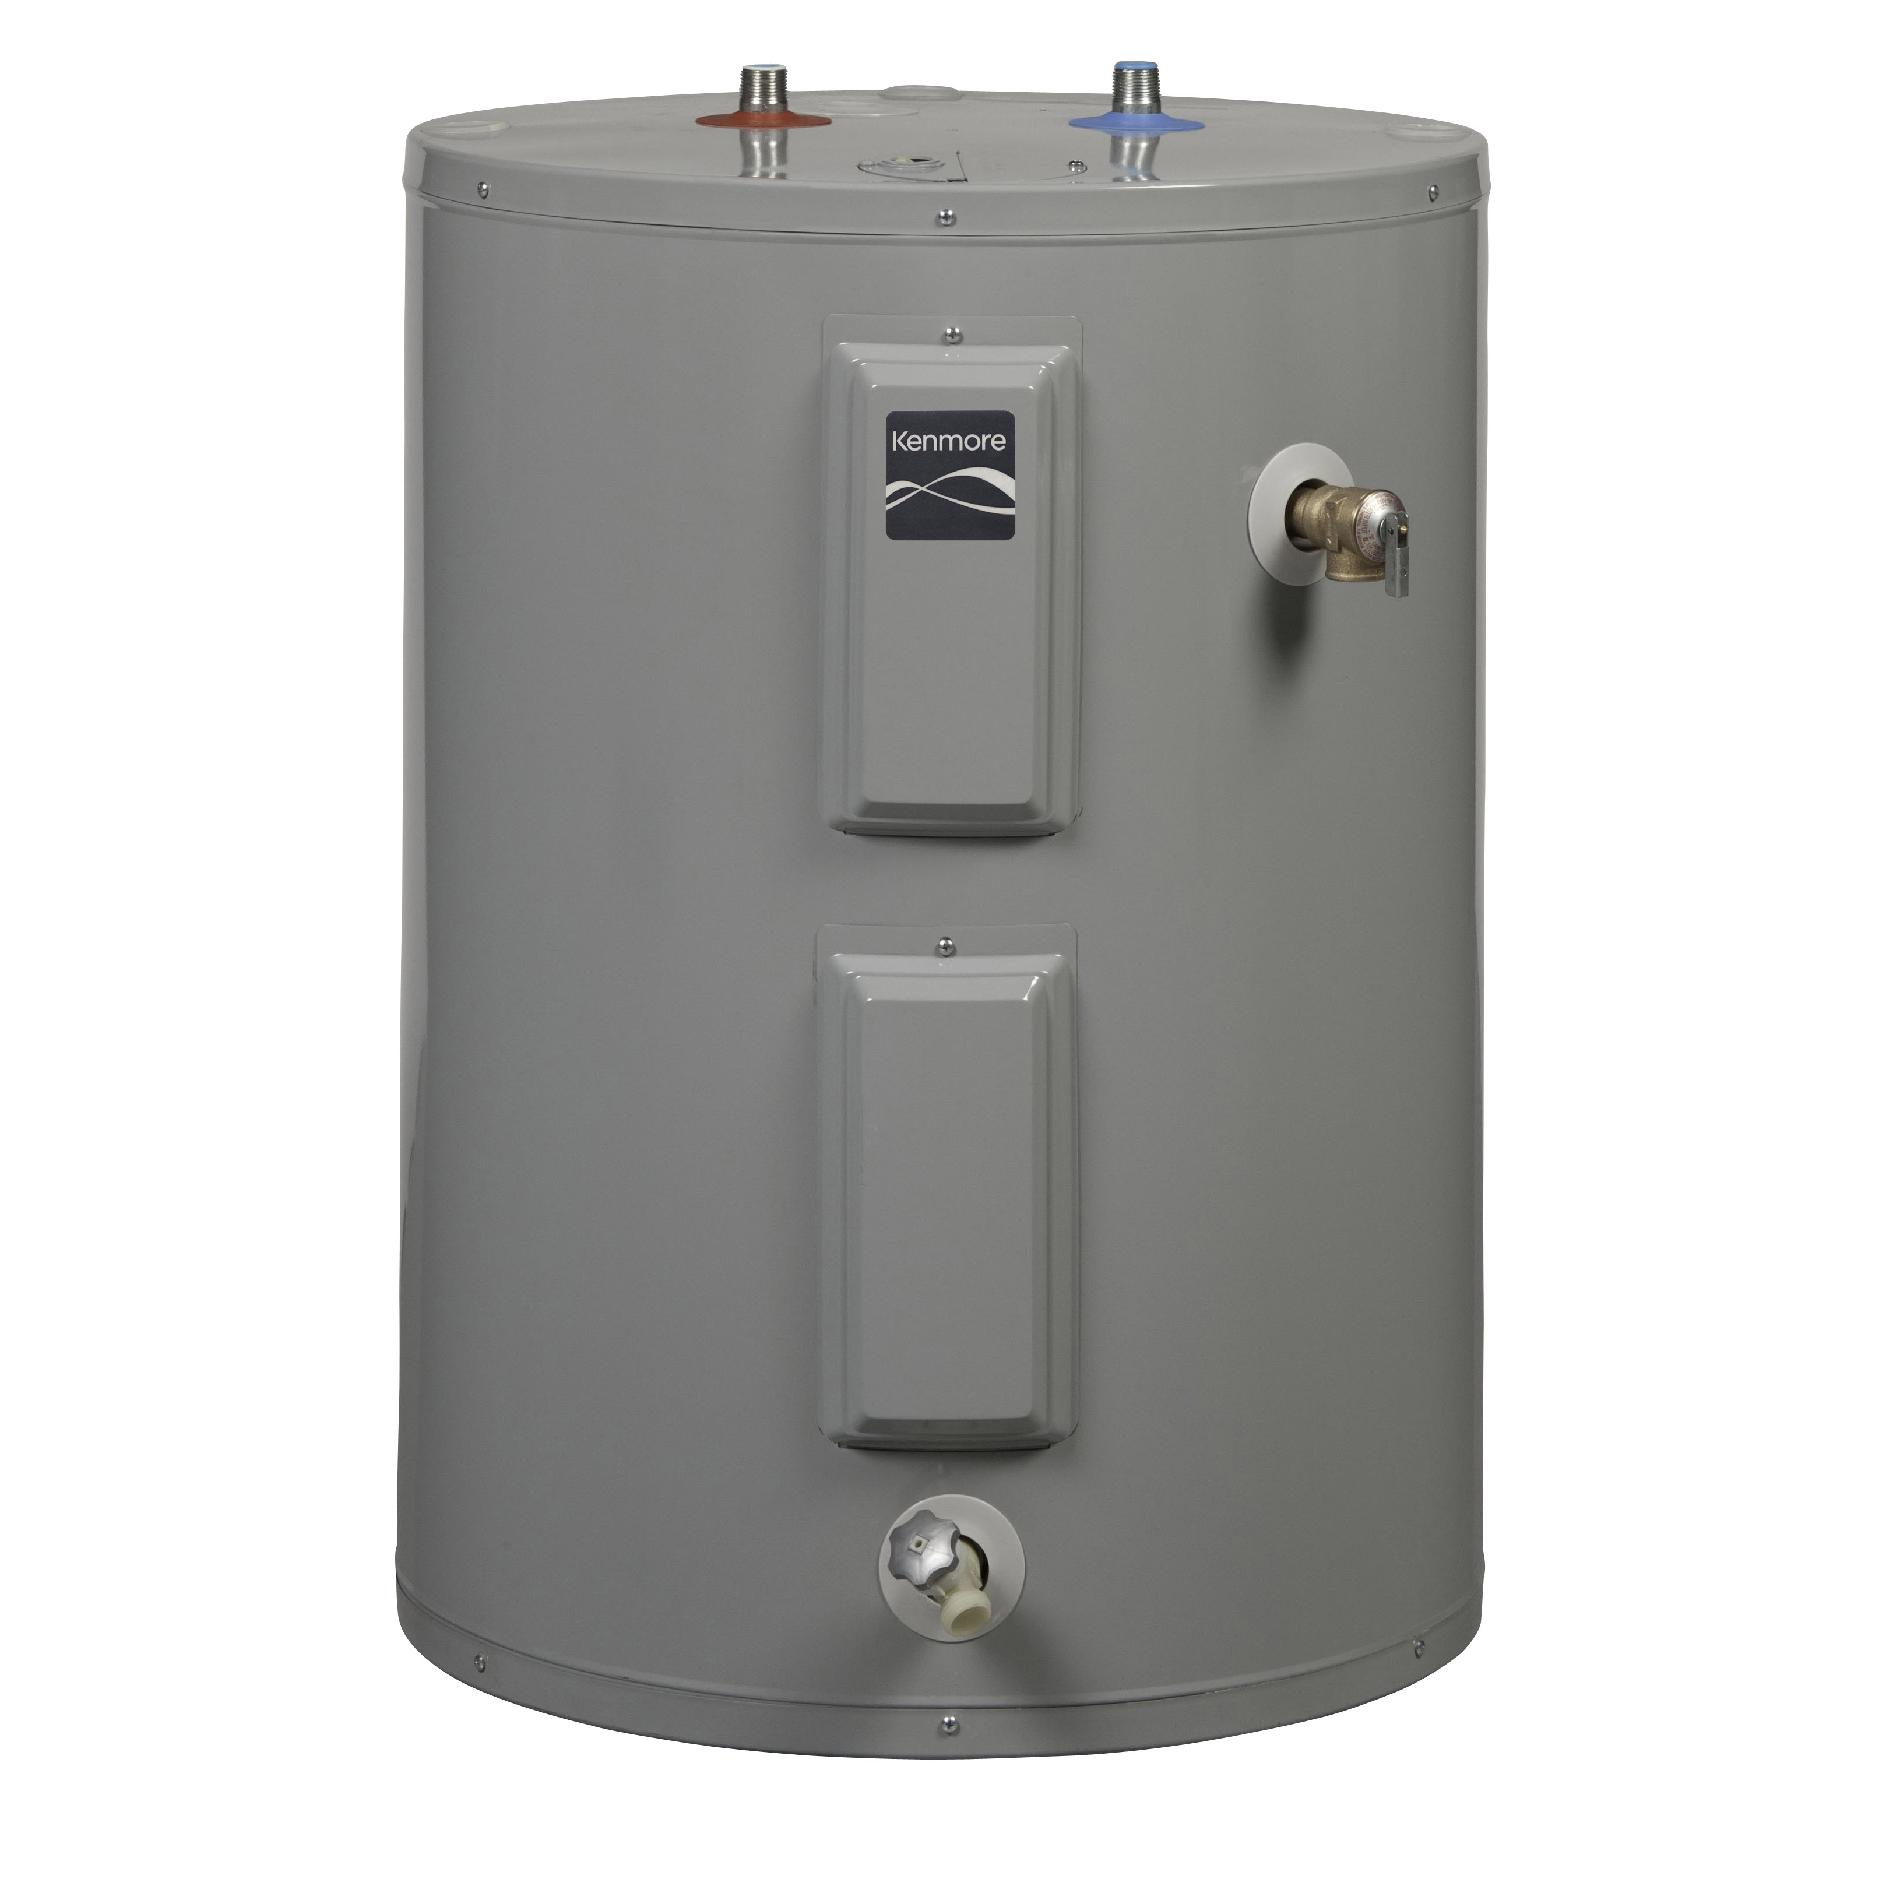 Kenmore 30 gal. Short 6-Year Electric Water Heater